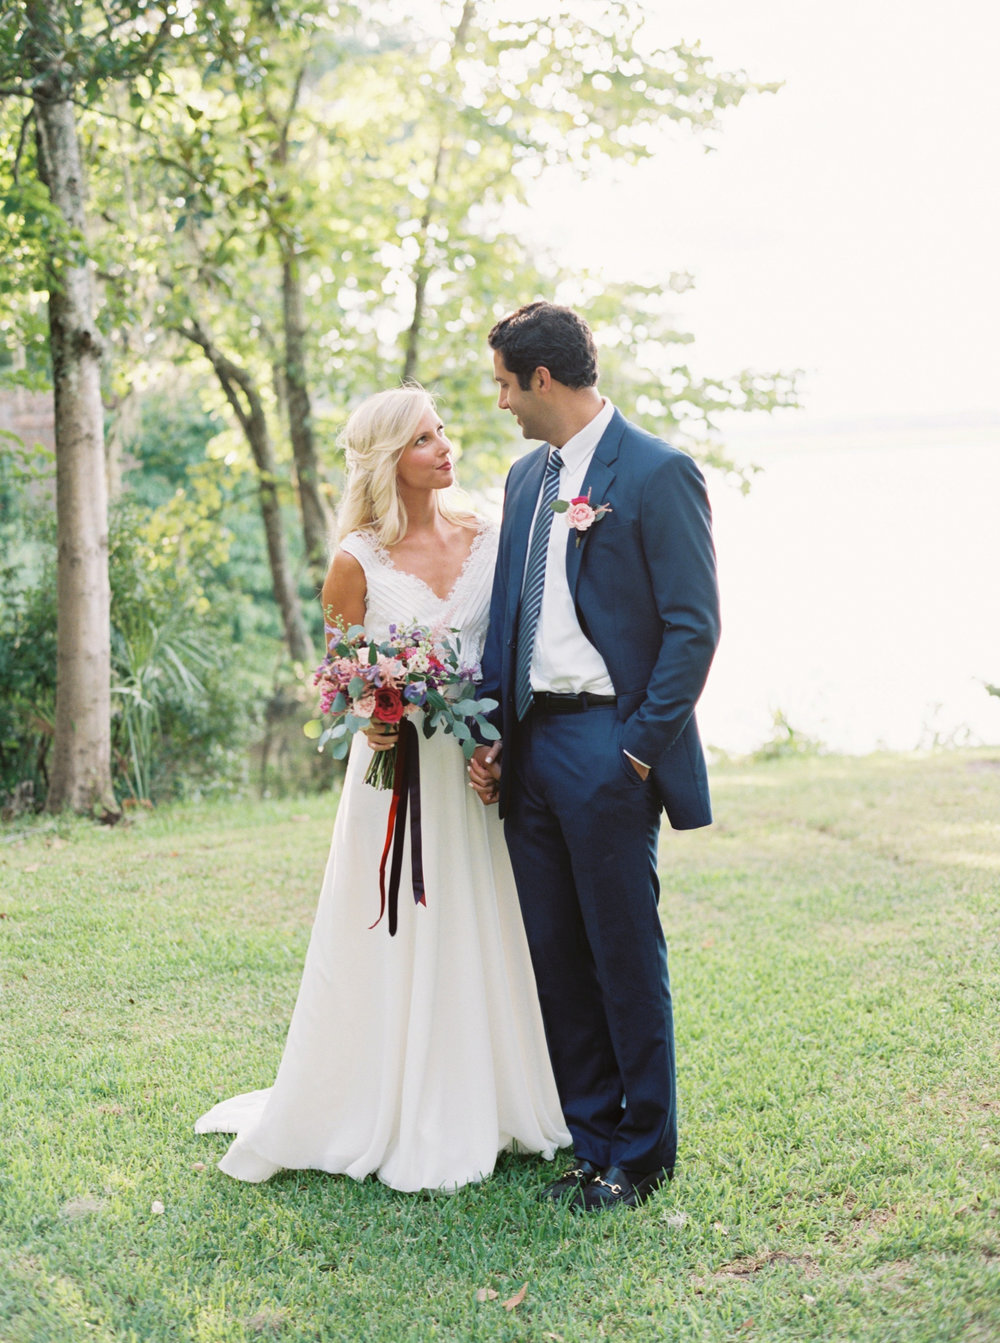 EmilyAnnHughesPhotography_Elopement-037.jpg